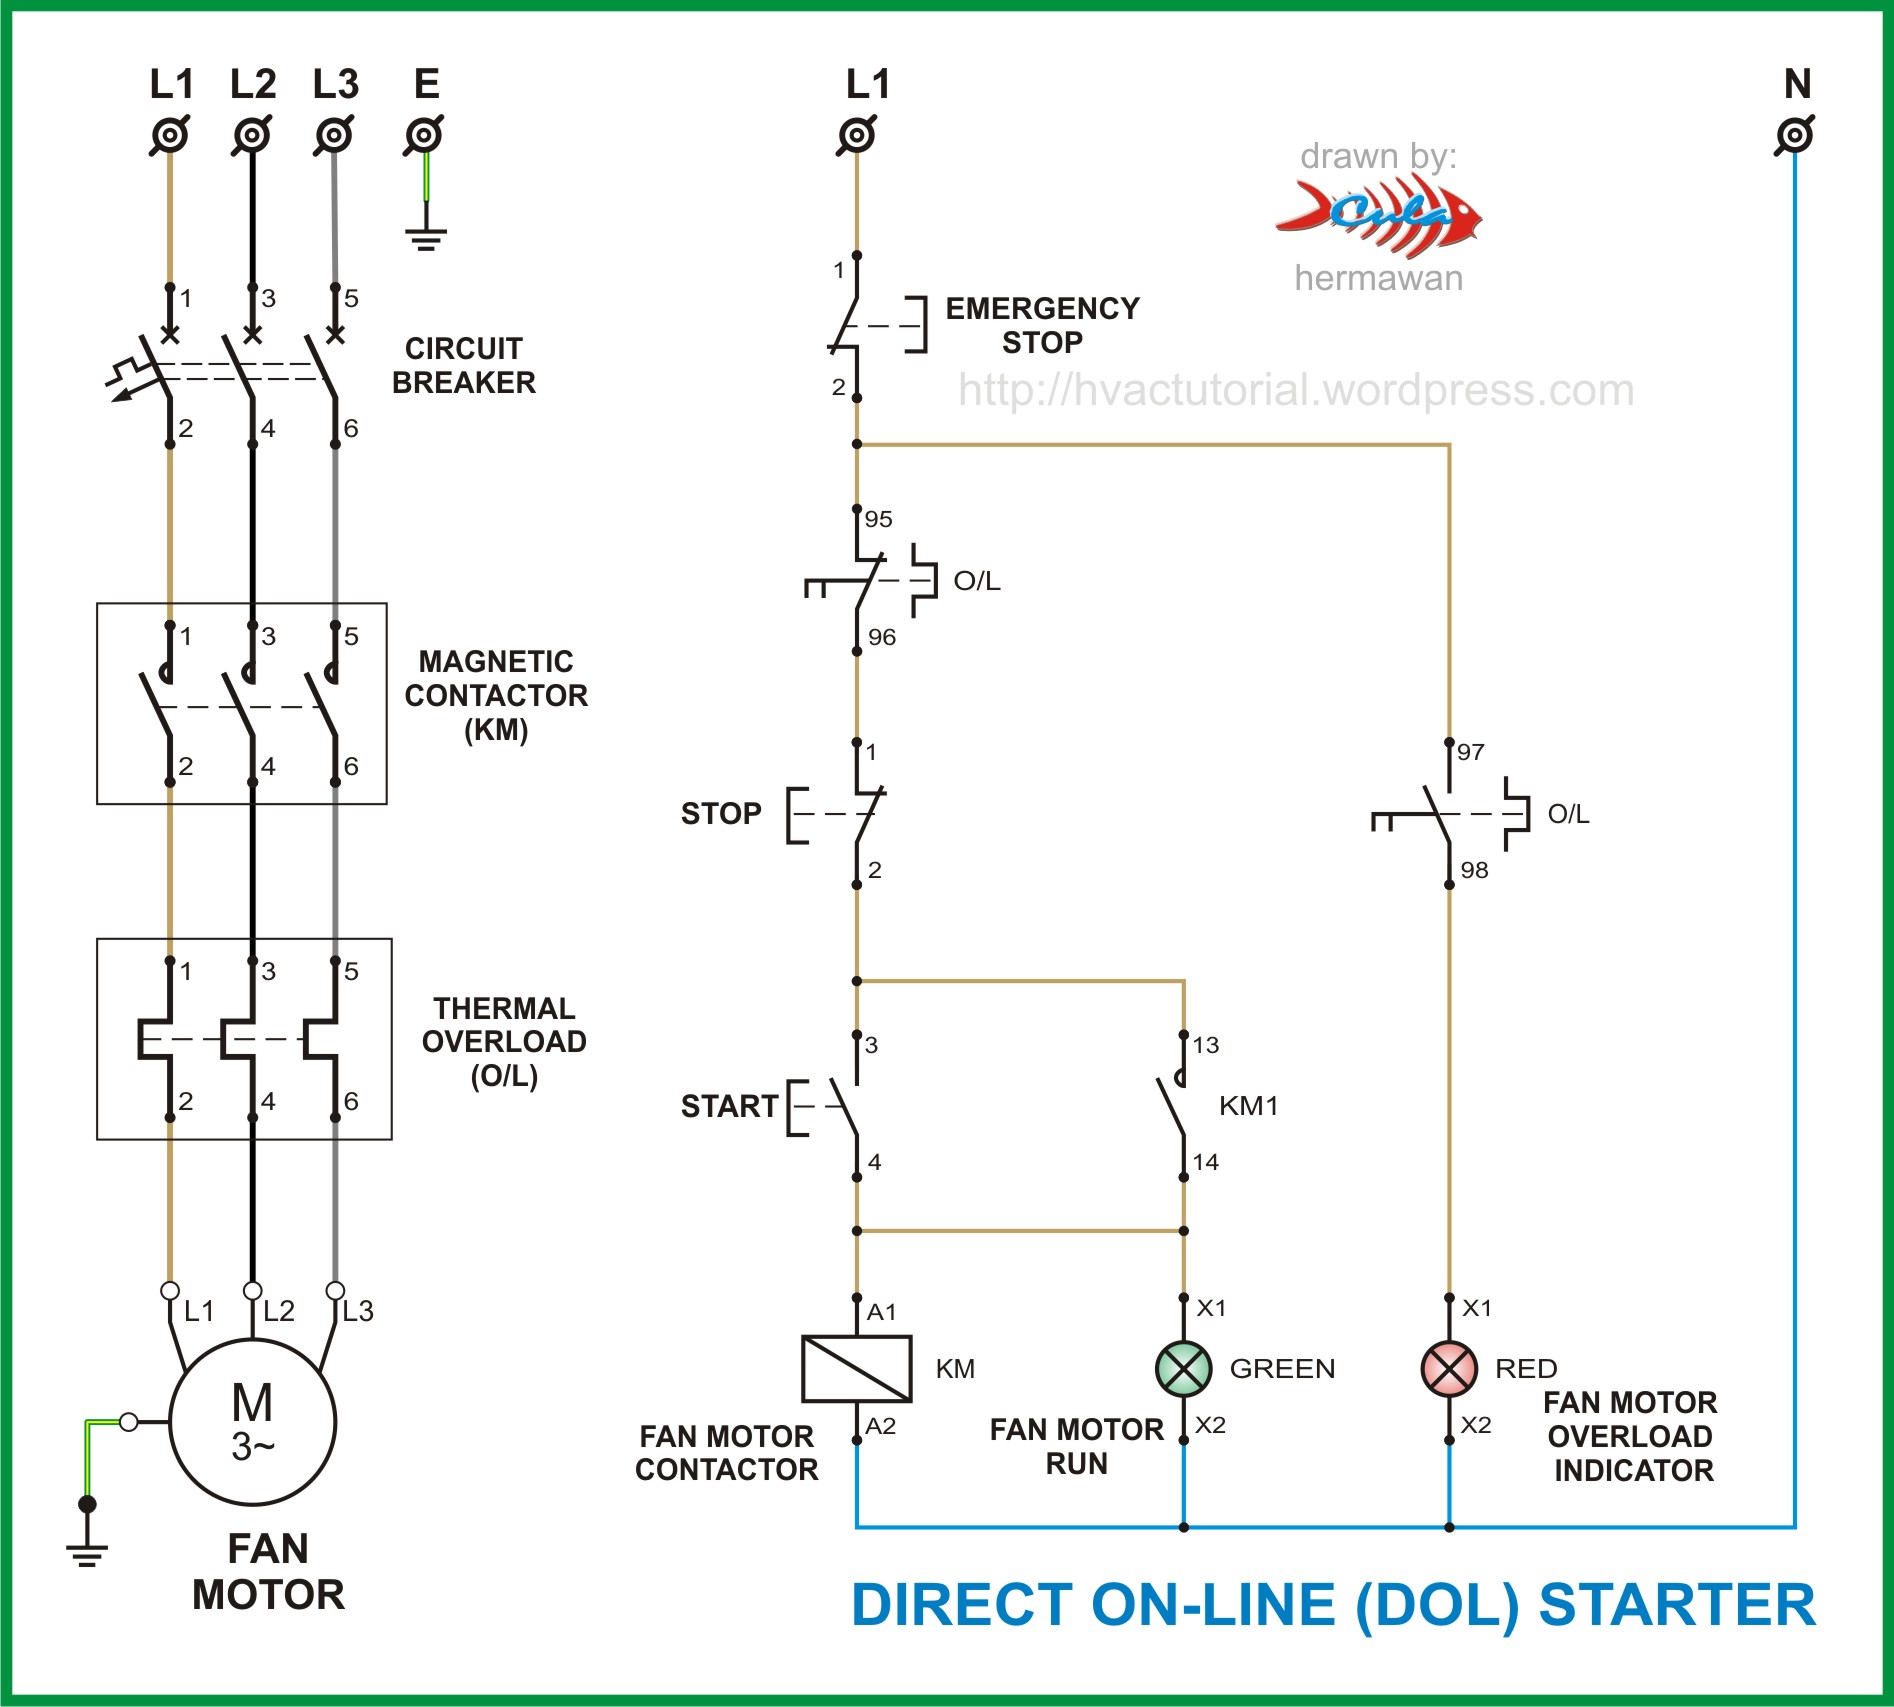 DOL Starter Hermawan's Blog Refrigeration And Air Conditioning